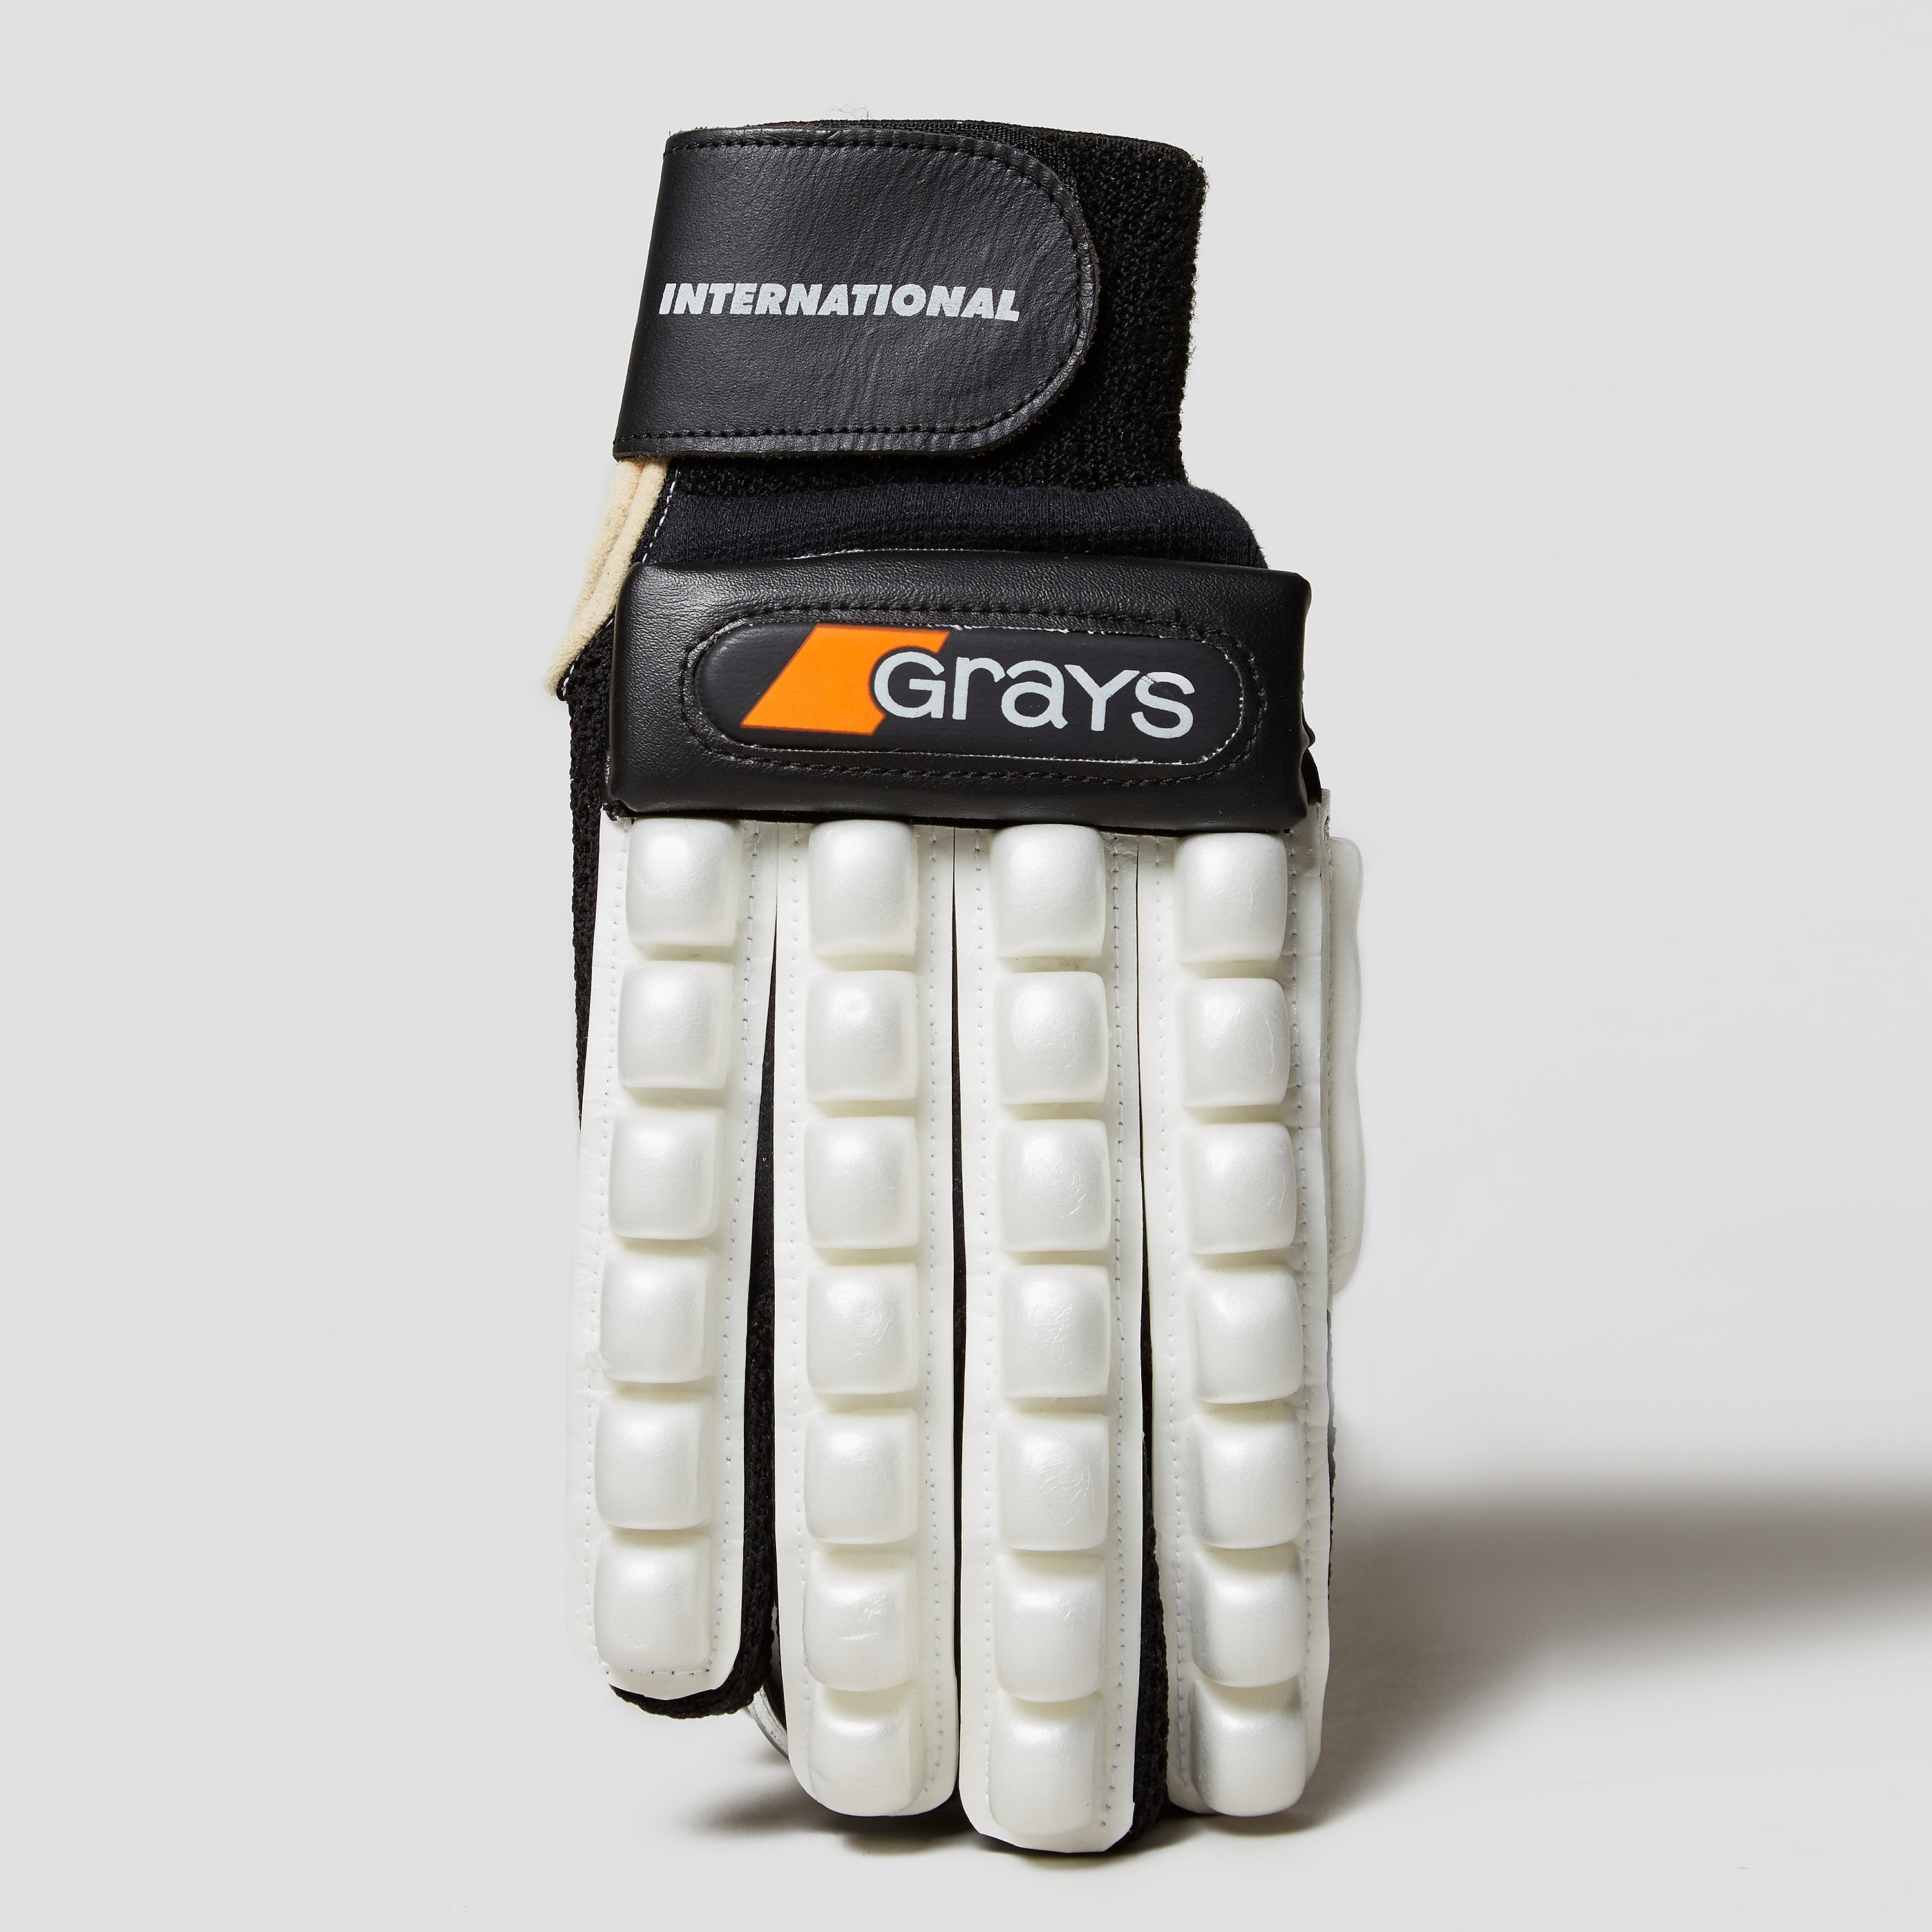 Grays international Right Hand Guard